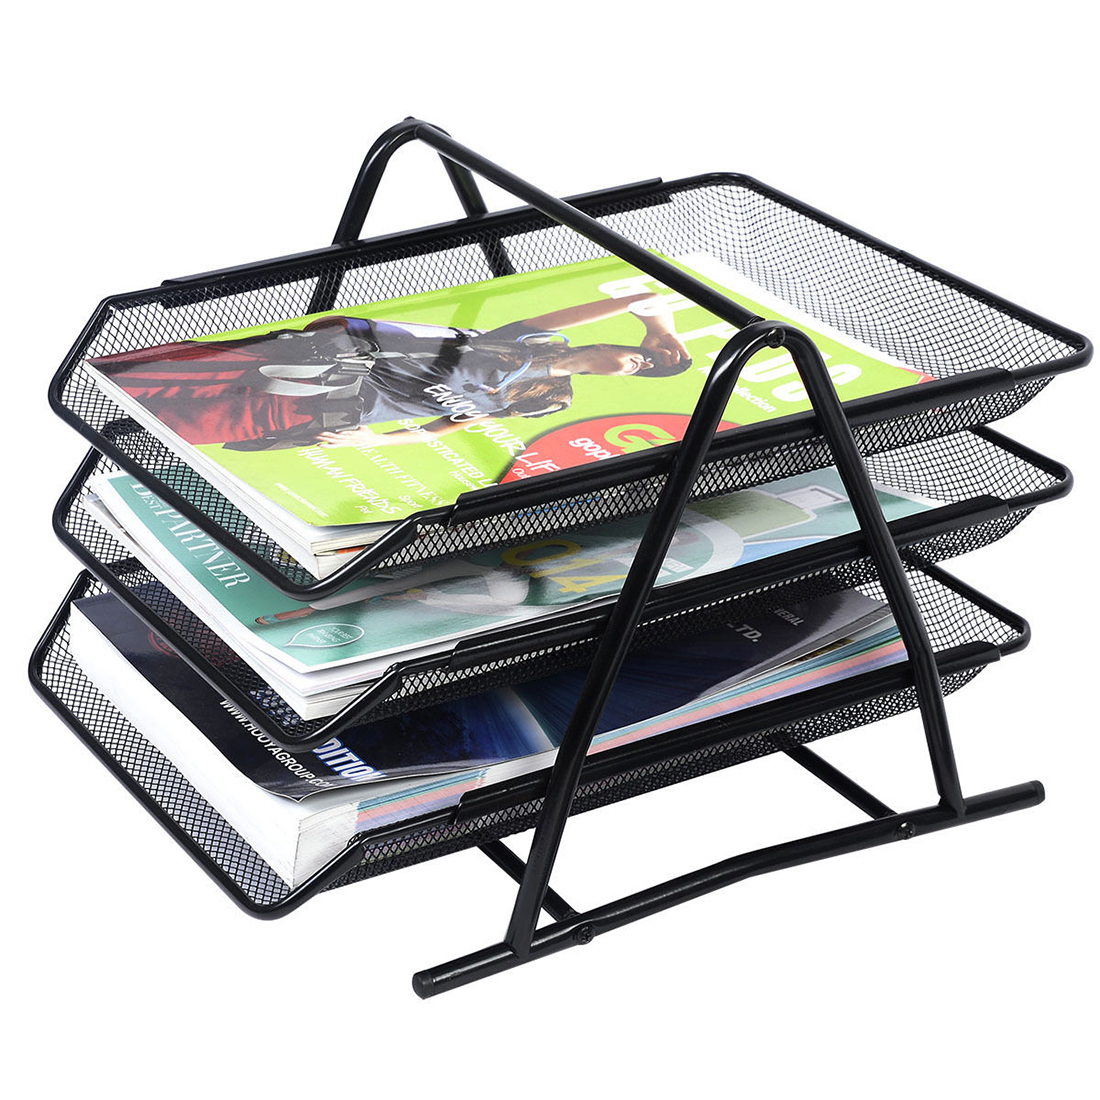 Popular Office Paper TrayBuy Cheap Office Paper Tray lots from